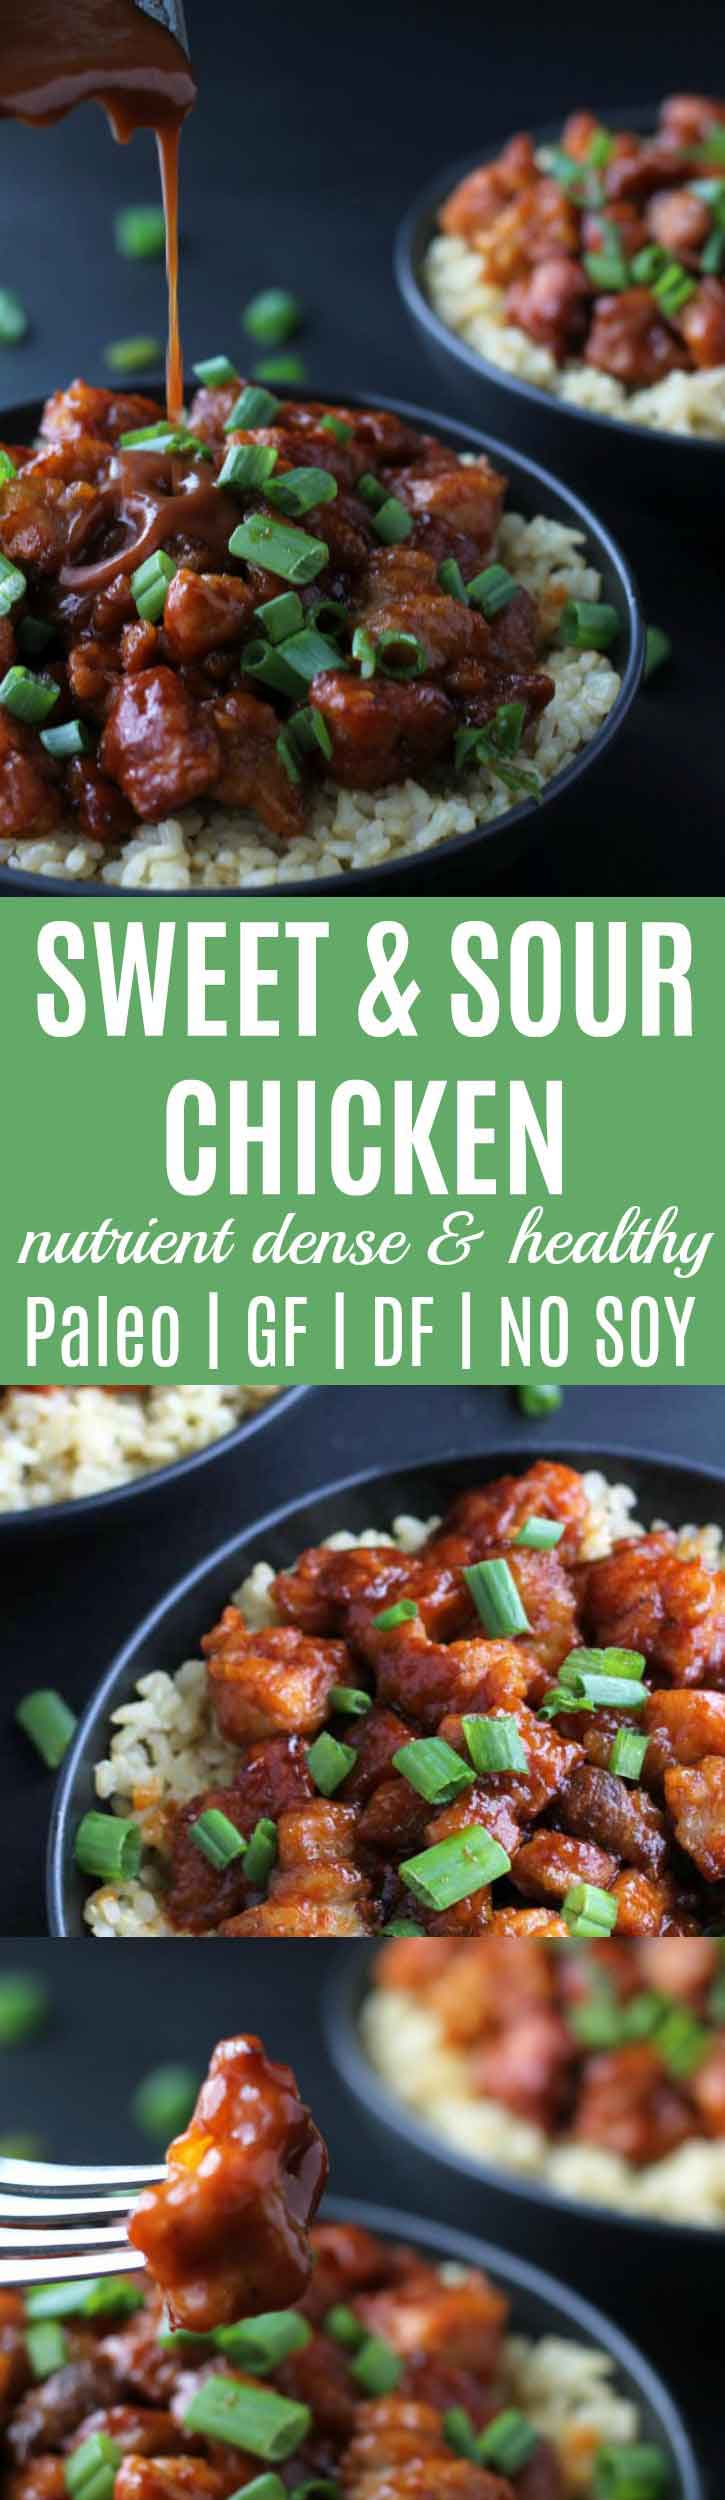 Sweet & Sour Chicken {Paleo} | This Sweet & Sour Chicken is a absolutely divine. It's so good you won't even want dessert afterwards! Paleo, gluten-free, dairy-free, & naturally sweetened. | thenourishedfamily.com